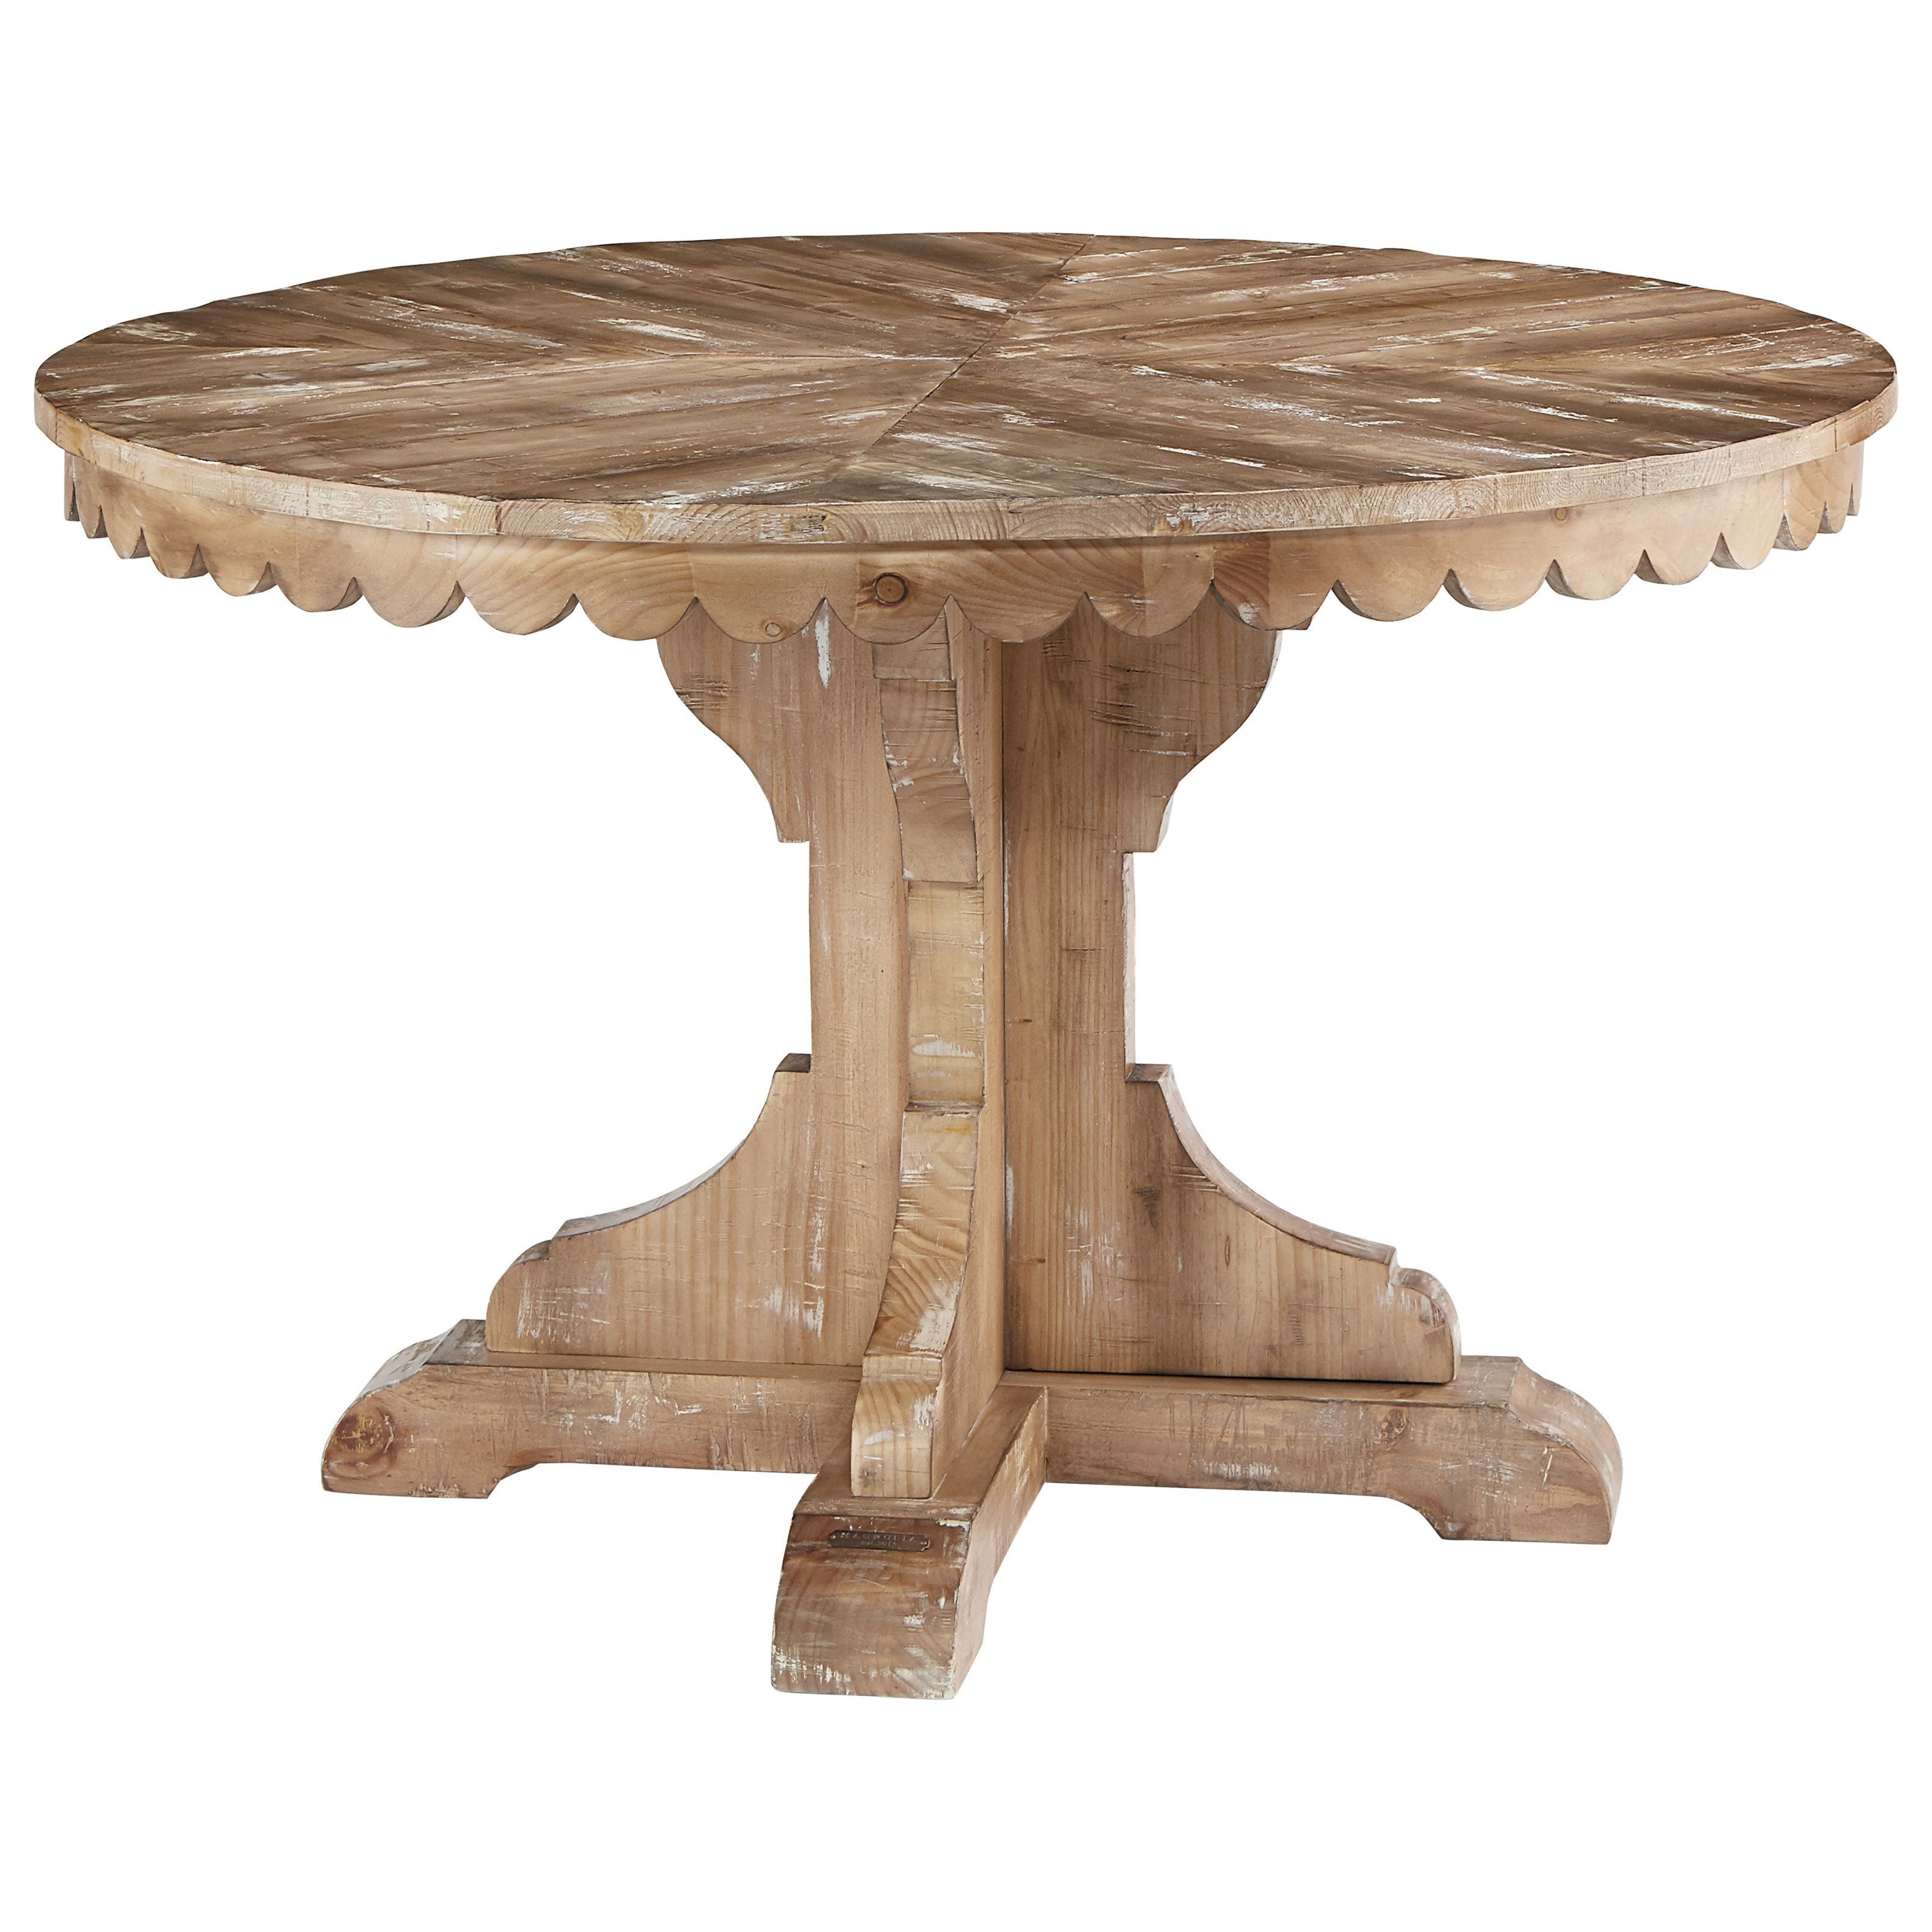 Round Pedestal Table with Scalloped Apron by Magnolia Home by Joanna